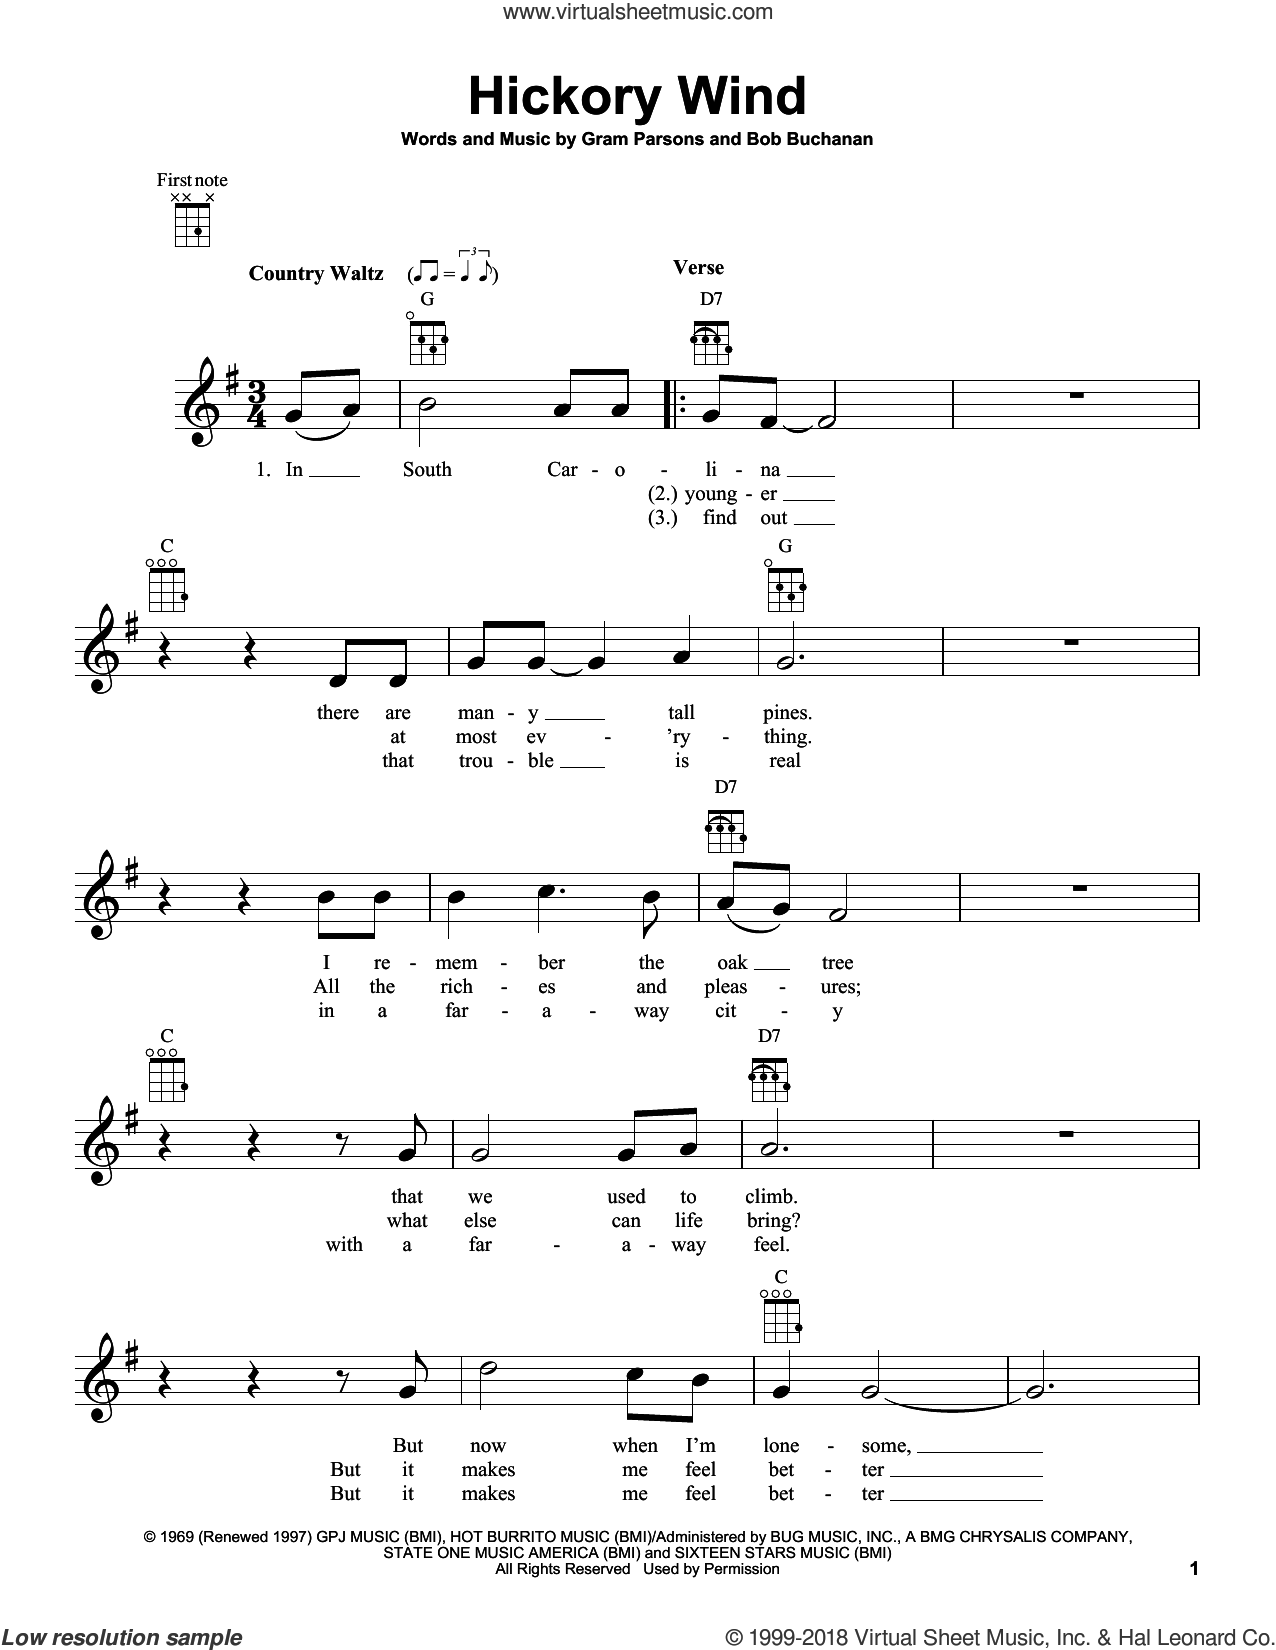 Hickory Wind sheet music for ukulele by Gram Parsons and Bob Buchanan, intermediate skill level